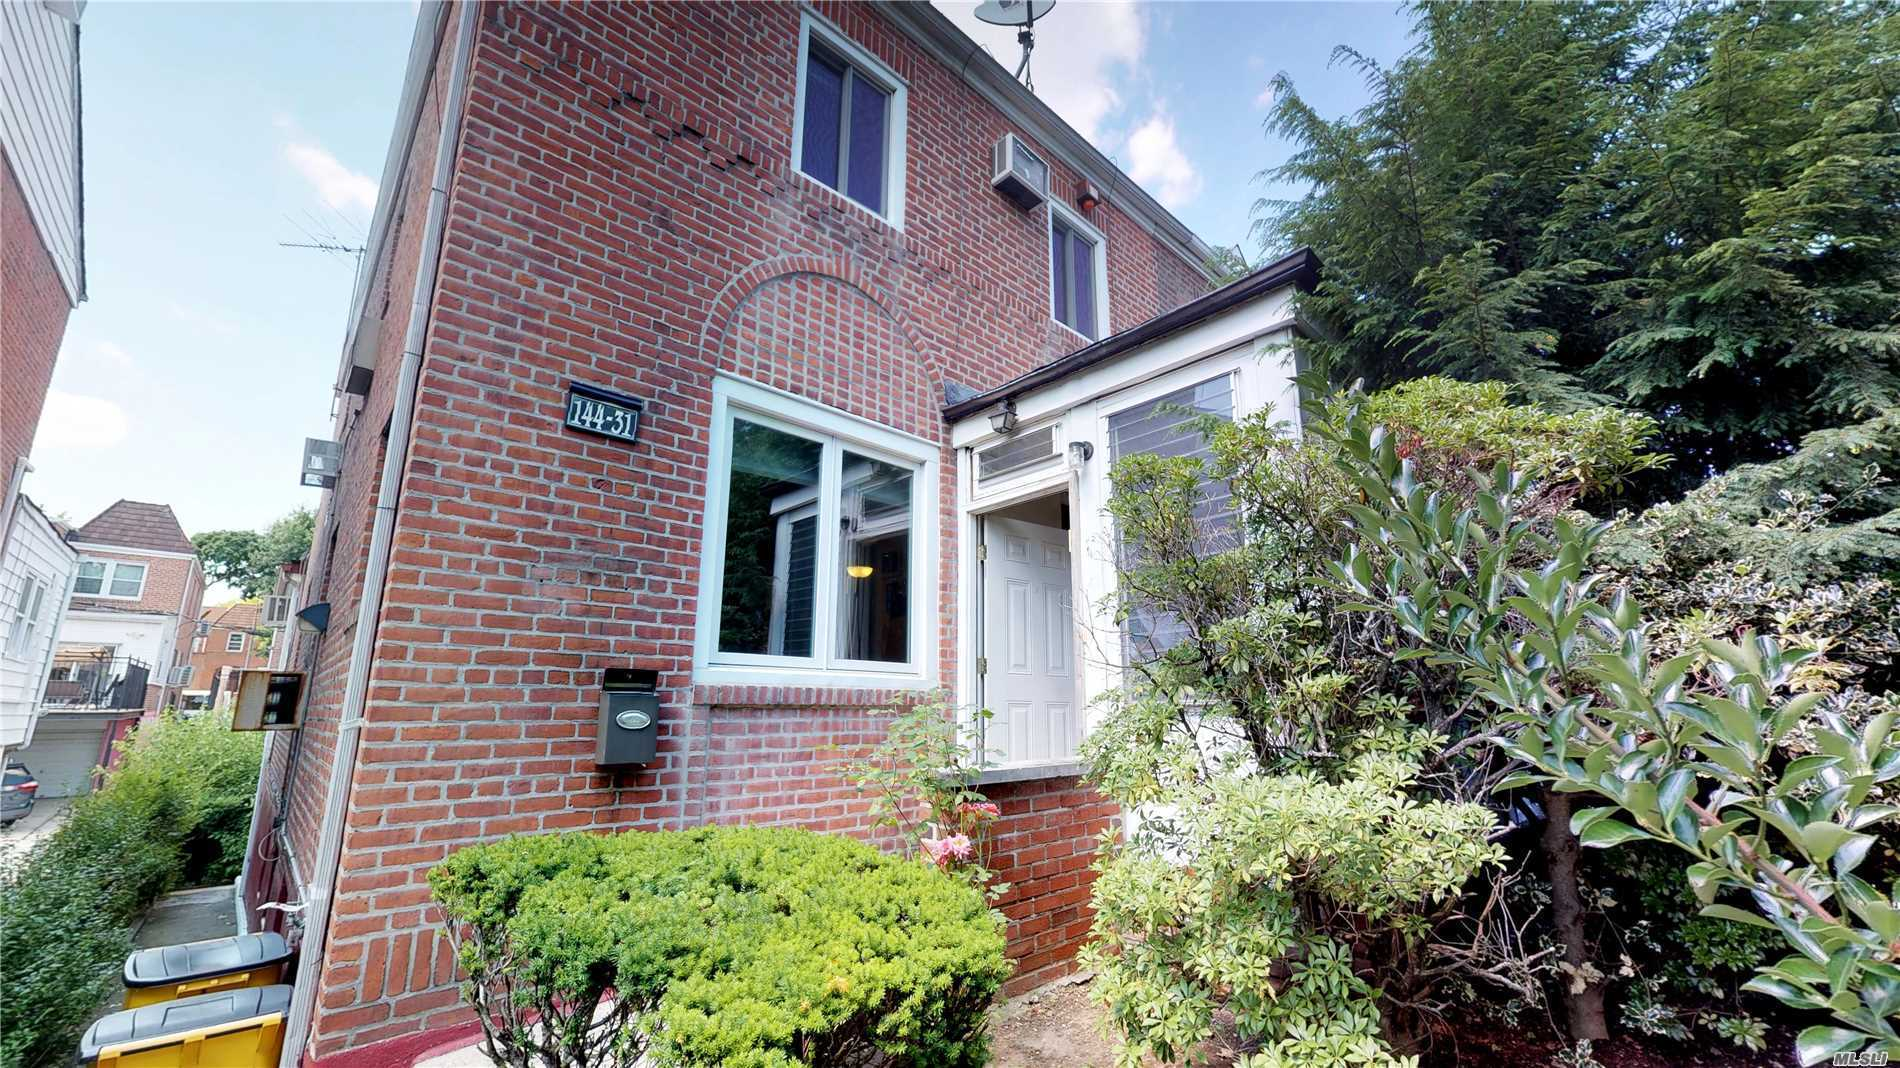 SWEET OPPORTUNITY FOR COMPLETELY RENOVATED 3BR-2.5BA EXPANDED COLONIAL GEM IN THE HEART OF KEW GARDEN HILLS<br><p>Semi-detached gem! Fine quality 3Br-2.5Bath expanded colonial with deck, finished walk-in mother-daughter basement, and finished attic. Too many exciting features, a homeowner's dream!<br><p>2180 Sqft home on 25x100 lot with deep 20x38 structure. Excellent location!<br><p>Entirely move-in ready and you don't spend a penny! Gorgeous Interior. Airy open layout, with each room flowing into the next.<br><p>First Floor:<br> Inviting entrance with enclosed porch room, walk into a massive sunken living room, flowing into deep formal dining room, chef's gourmet granite/stainless fully equipped kitchen, newly remodeled 1/2 bath, expansive den or convertible 4th bedroom overlooking the dining room with sliding doors to an enormous finished deck. Rich new flooring, fine finishes throughout.<br><p>2nd Floor:<br> King size master bedroom, large 2nd & 3rd bedrooms, exquisite new full bath with 6ft tub and additional shower stall, dedicated laundry area with premier quality washer & dryer, amazing closet space, staircase to spacious finished attic<br><p>Basement:<br>Finished legal basement, mother-daughter style, separate entry, complete kitchenette, family room, bedroom, full bath, 2nd laundry area, amazing storage.<br><p>Private outdoor patio, 2-car driveway, and attached garage.<br><p>Structurally sound and headache free. Roof,  windows, and 4yr old gas boiler are in excellent condition. Updated plumbing and electrical. <br><p>Pristine lush tree-lined street, very fine residential neighbrohood, steps to all shops and transportation, near all highways. Easy access to Q64 bus and express buses, short ride to 71st Ave E/F/R/M subway and LIRR. 45min commute to midtown.<br><p>Excellent upside potential in a very desired neighborhood.<br><p>Please call to schedule a viewing. Virtual walkthrough and floorplans available.<br><p>Experience a  3-D Virtual Tour by Clicking on 